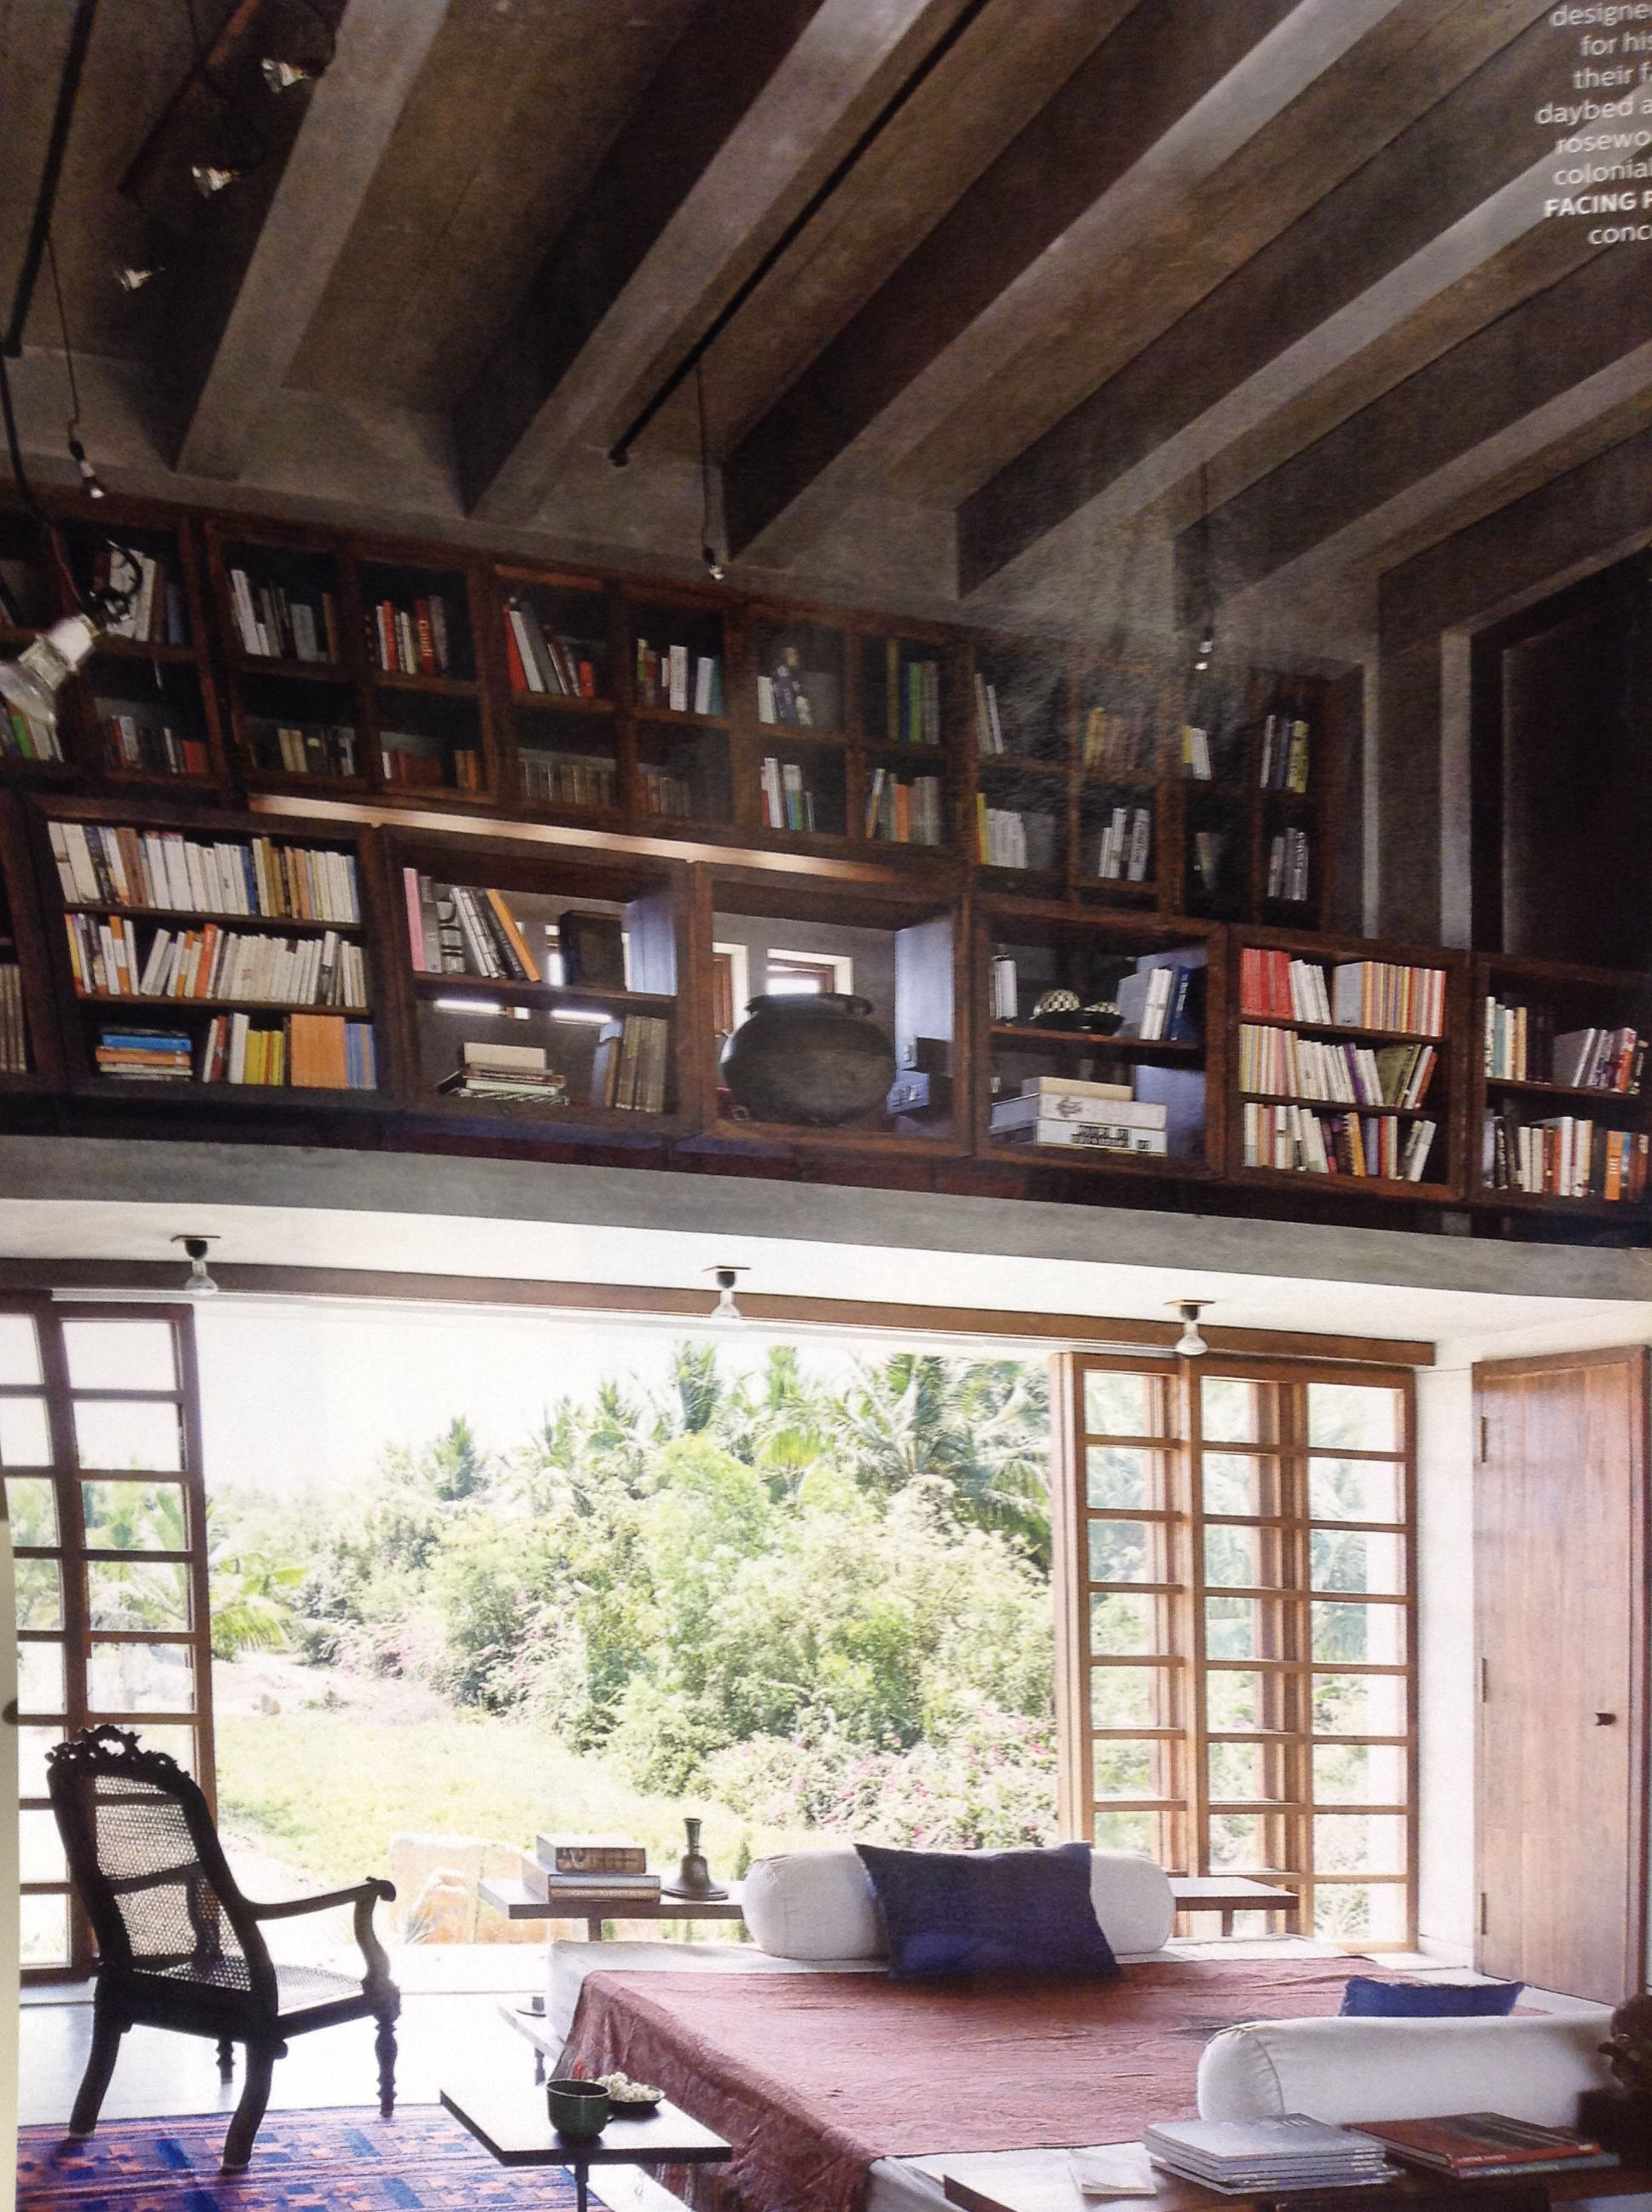 Home Library Loft: Open Library, Home, Home Decor